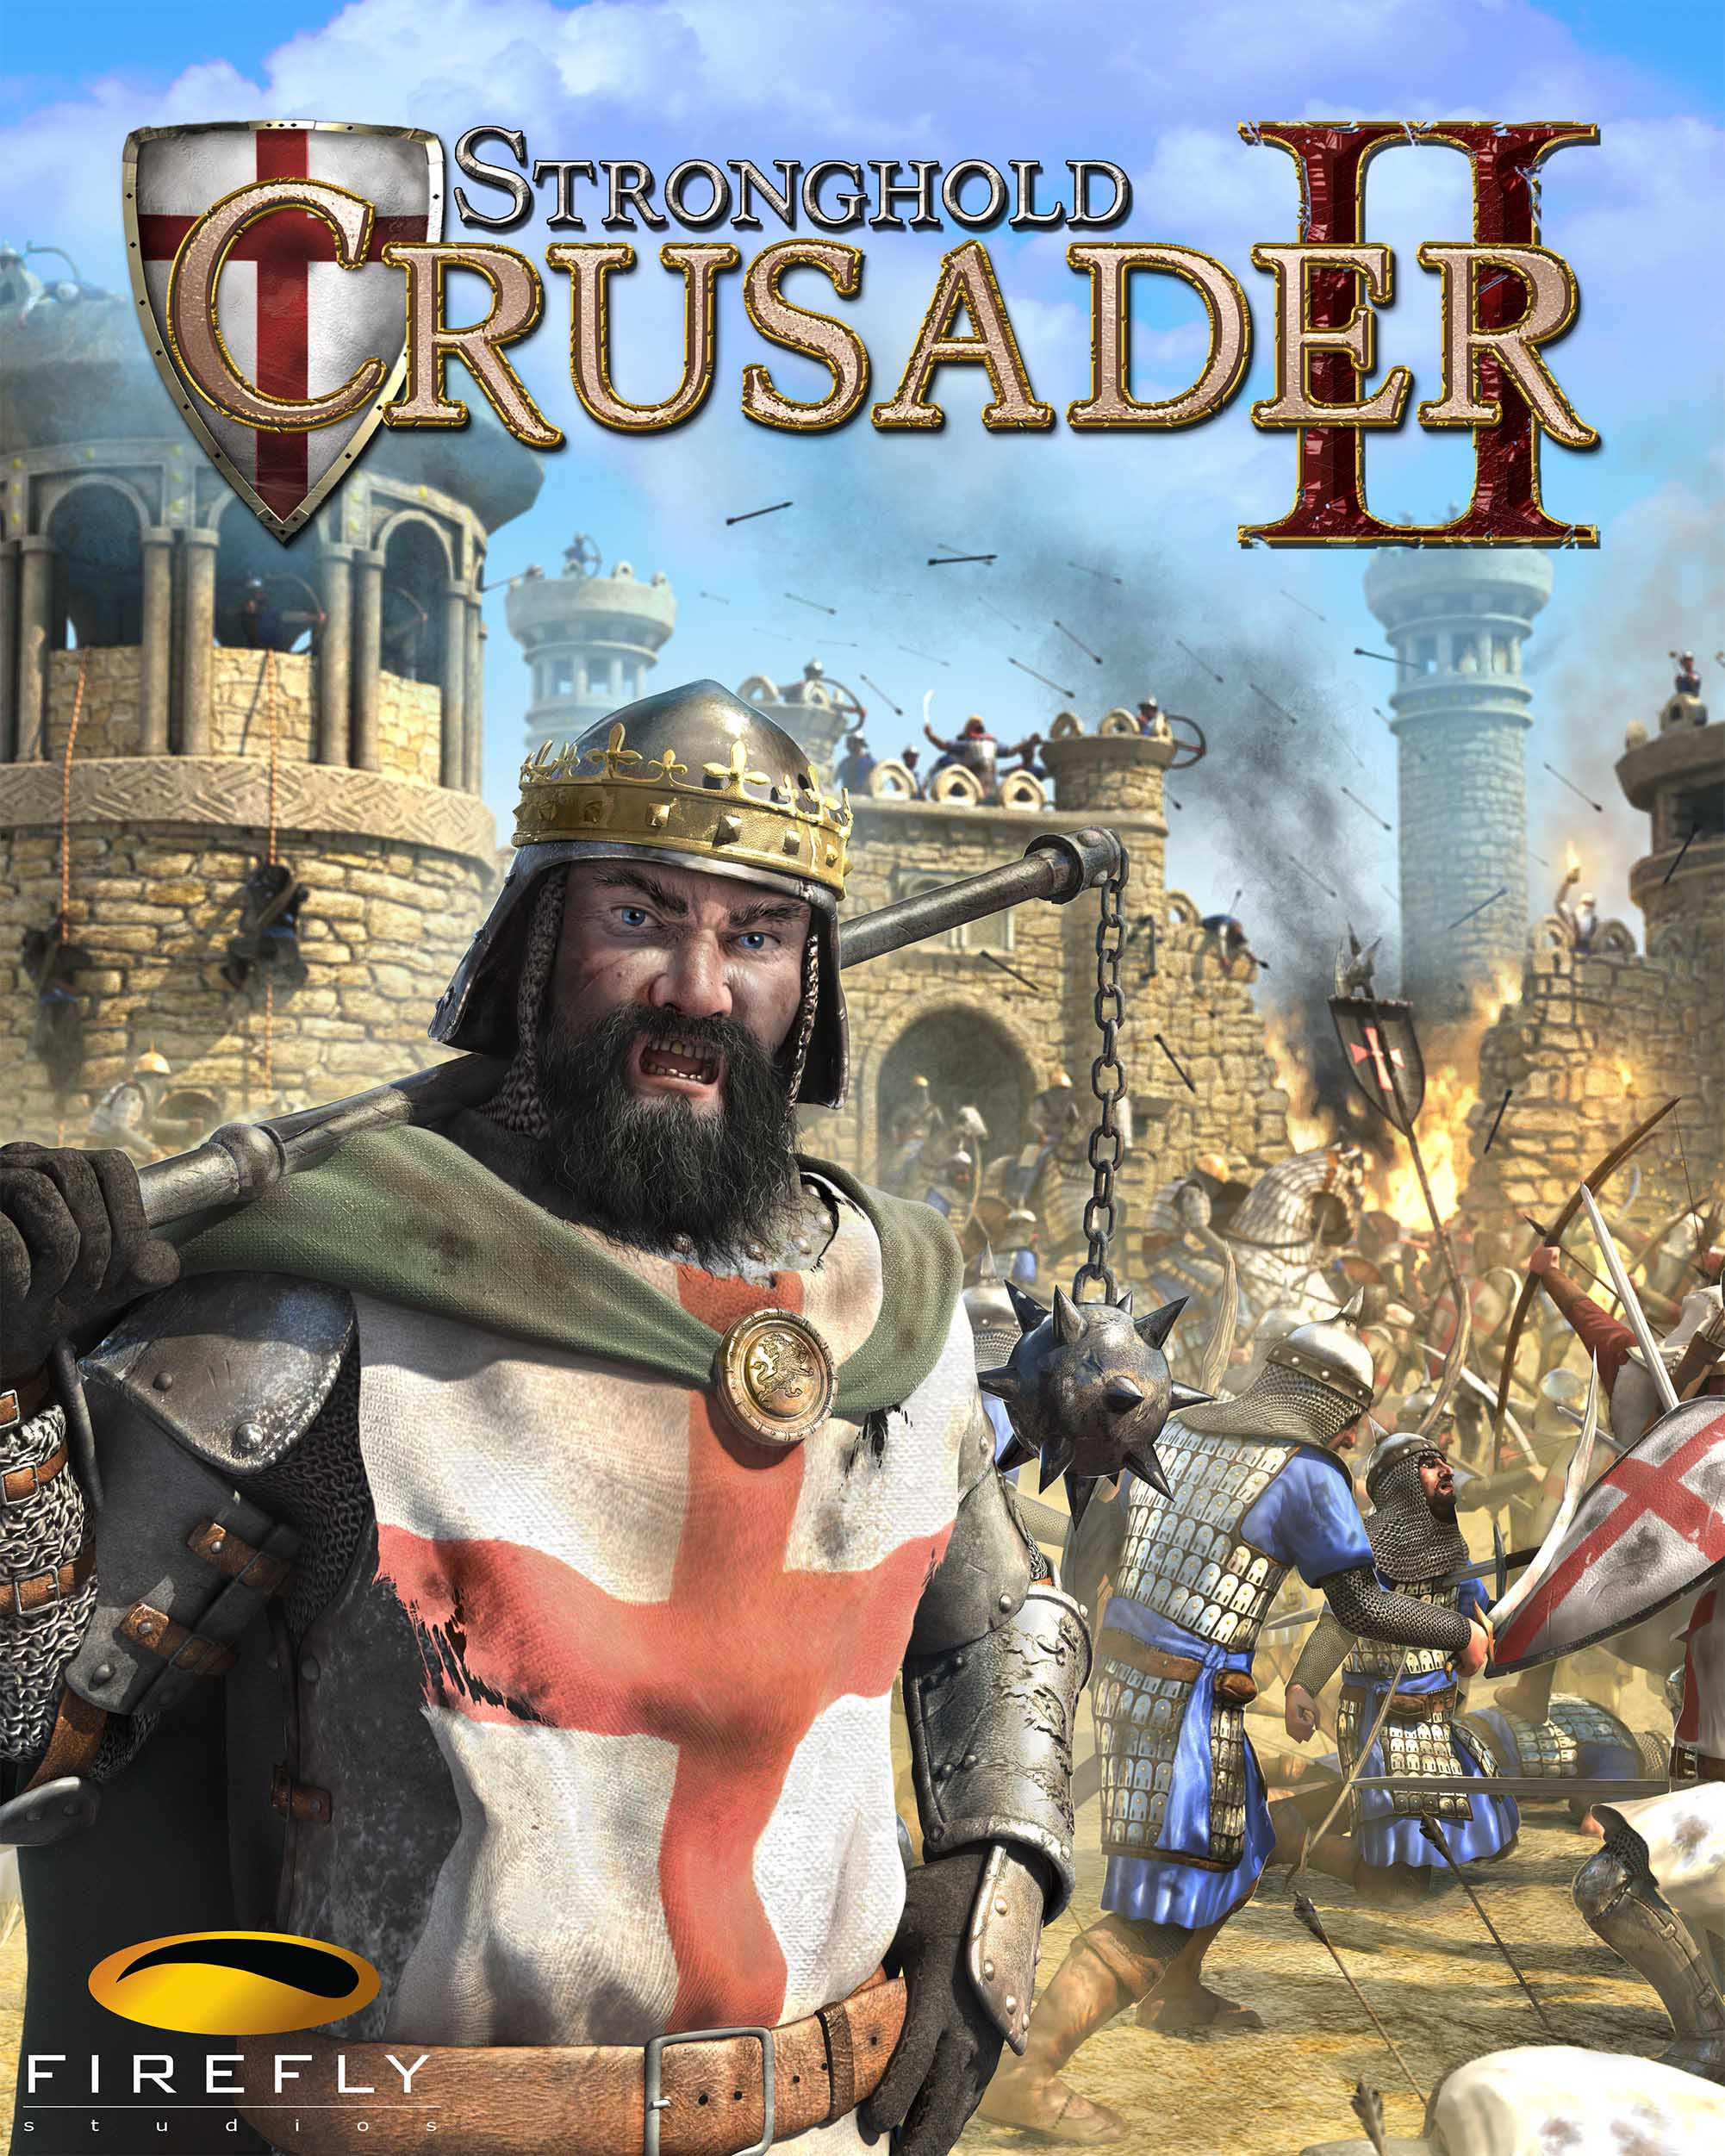 Crusader2_cover_S